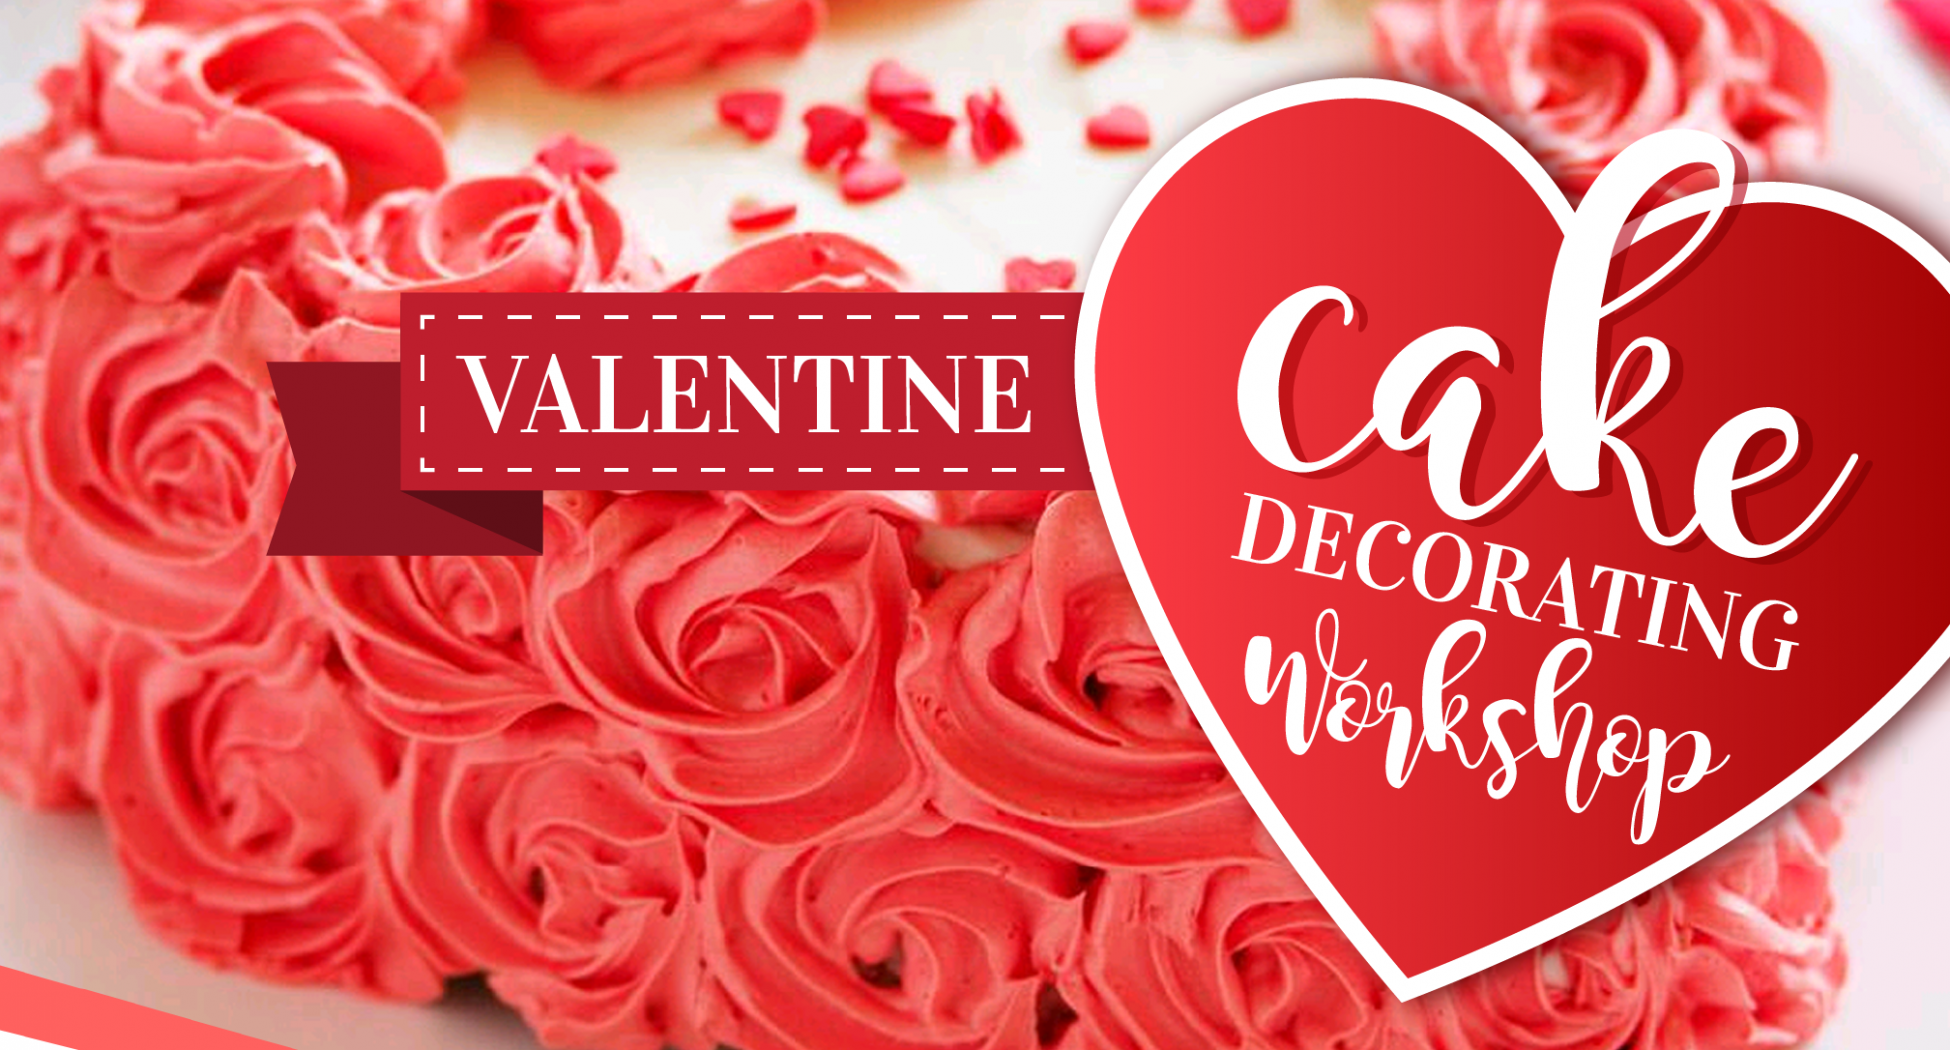 Valentine Decorating Workshop